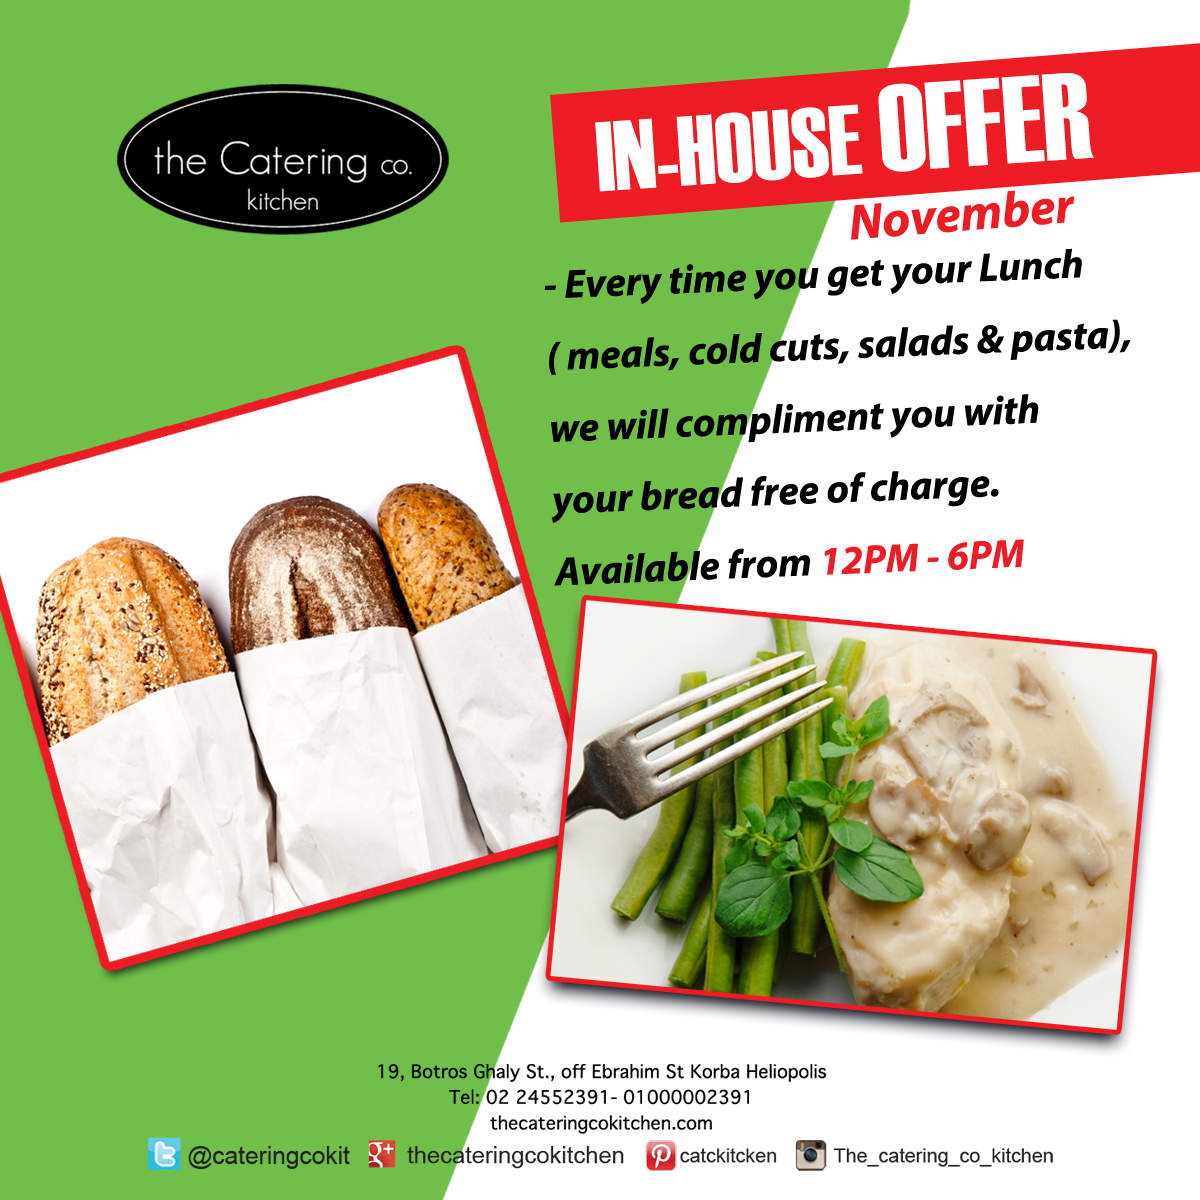 November in-house offer